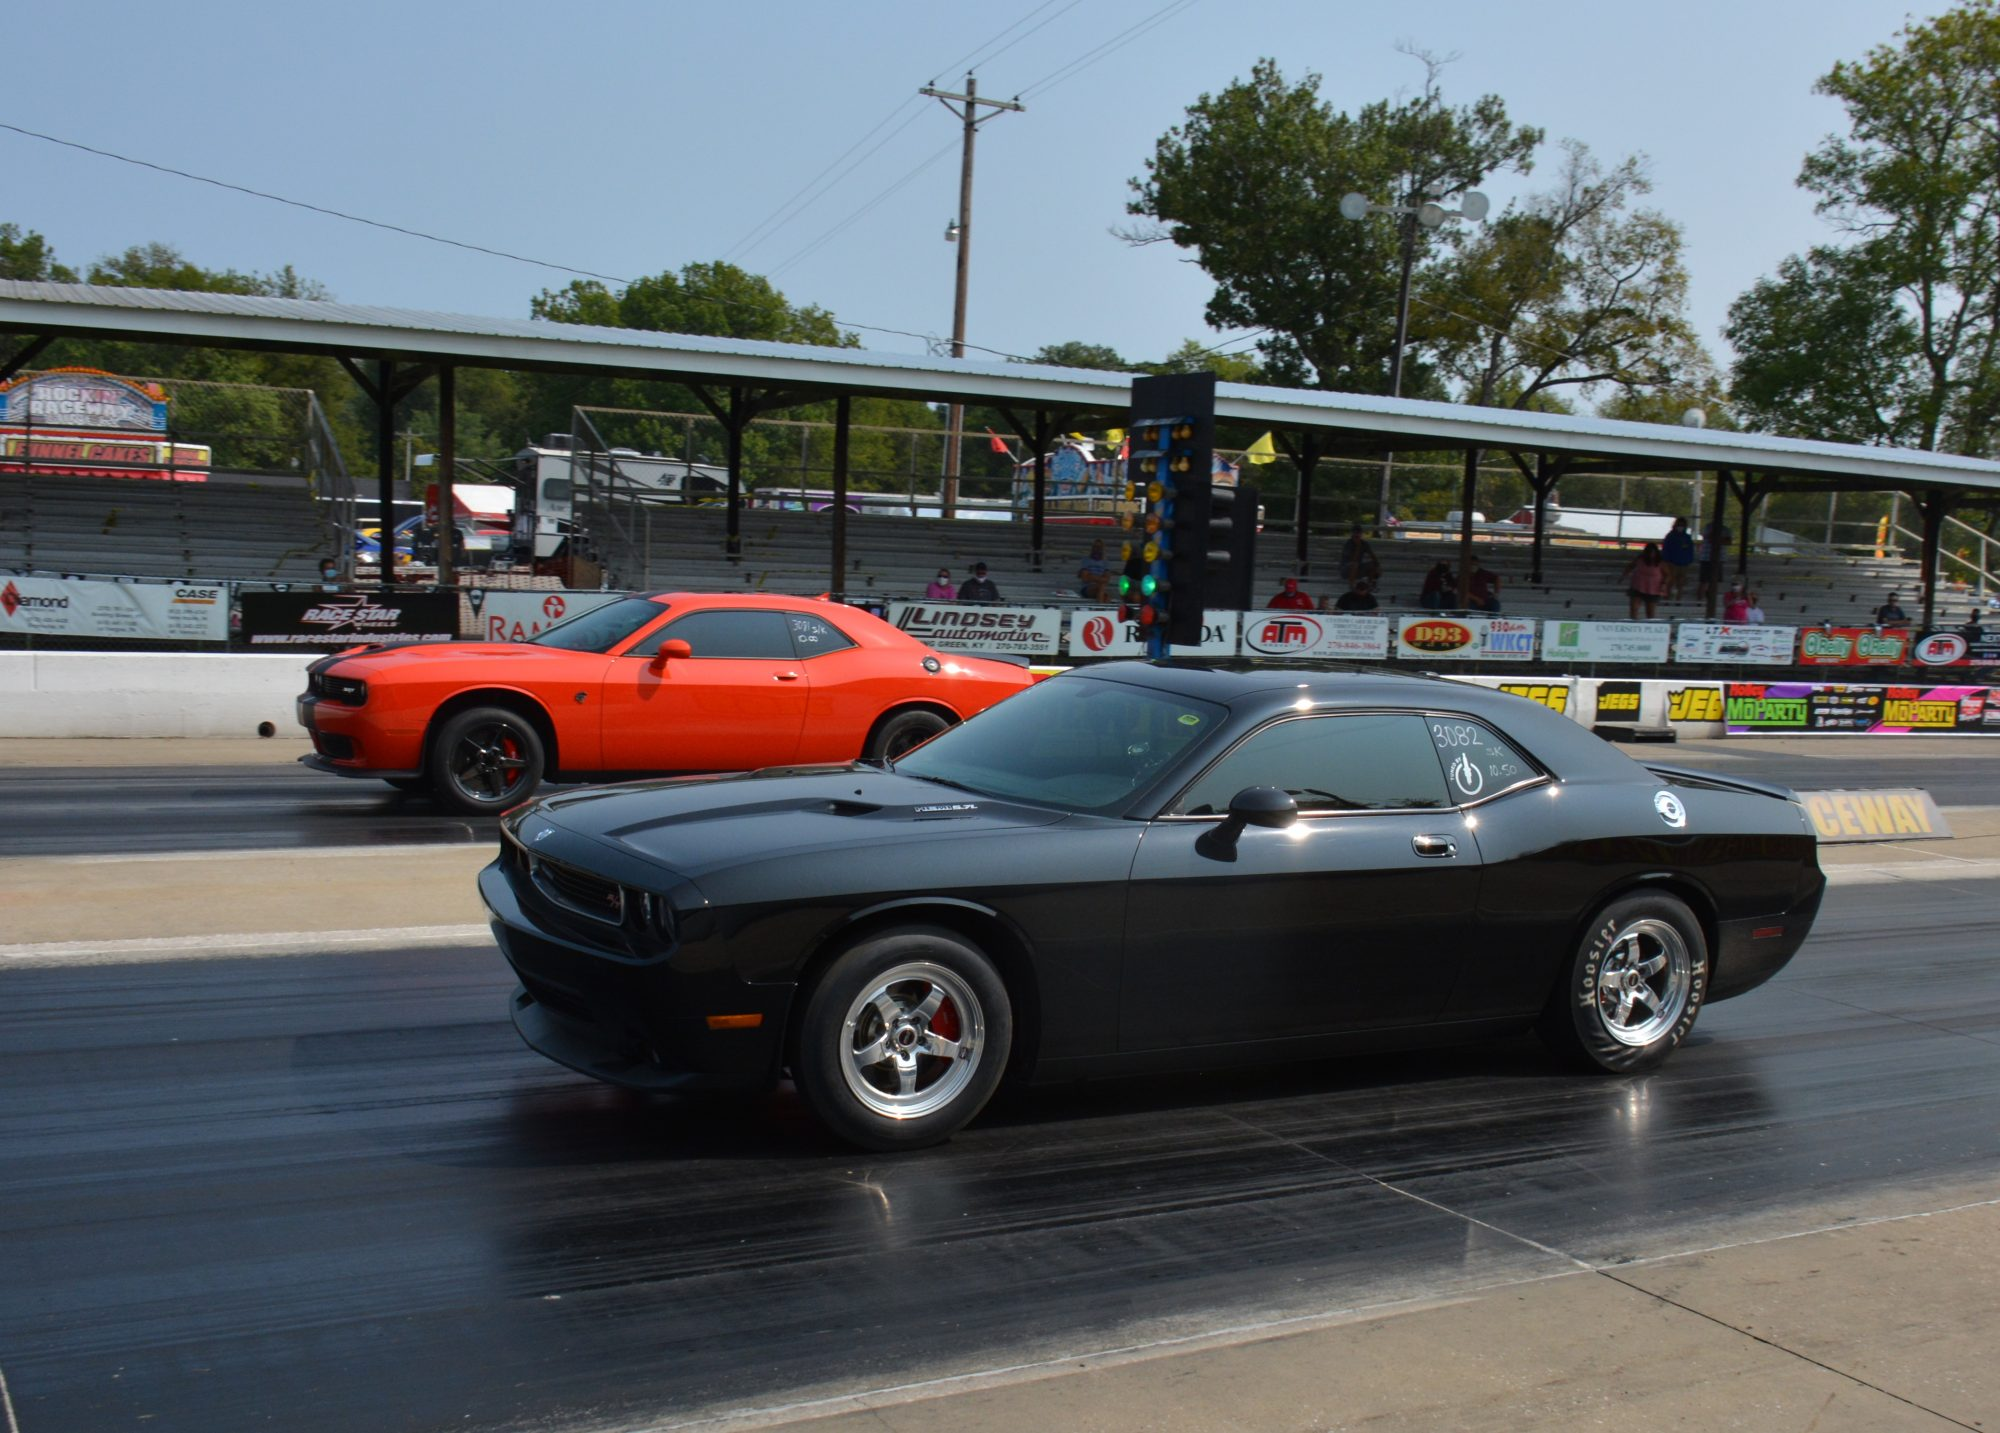 2 Challengers racing each other